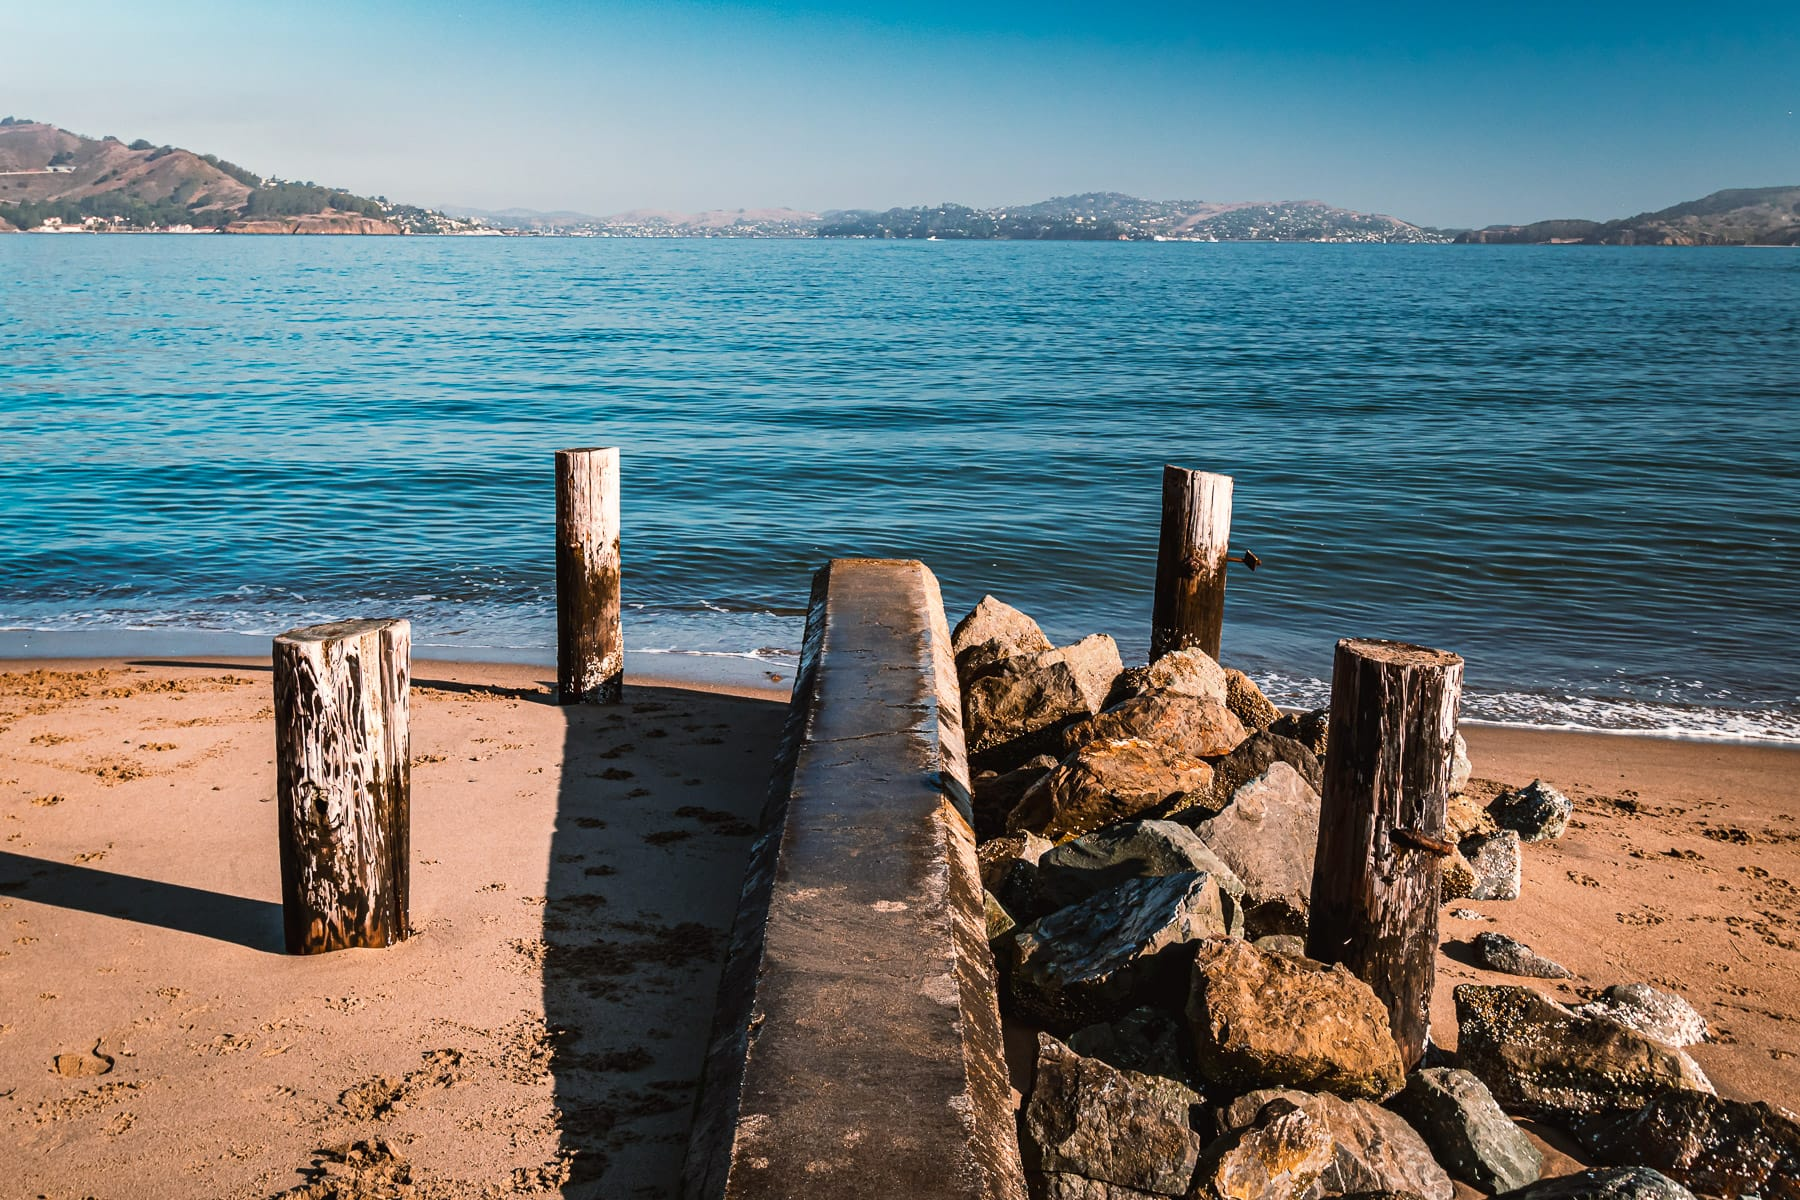 The remains of an old pier at Crissy Field, San Francisco.